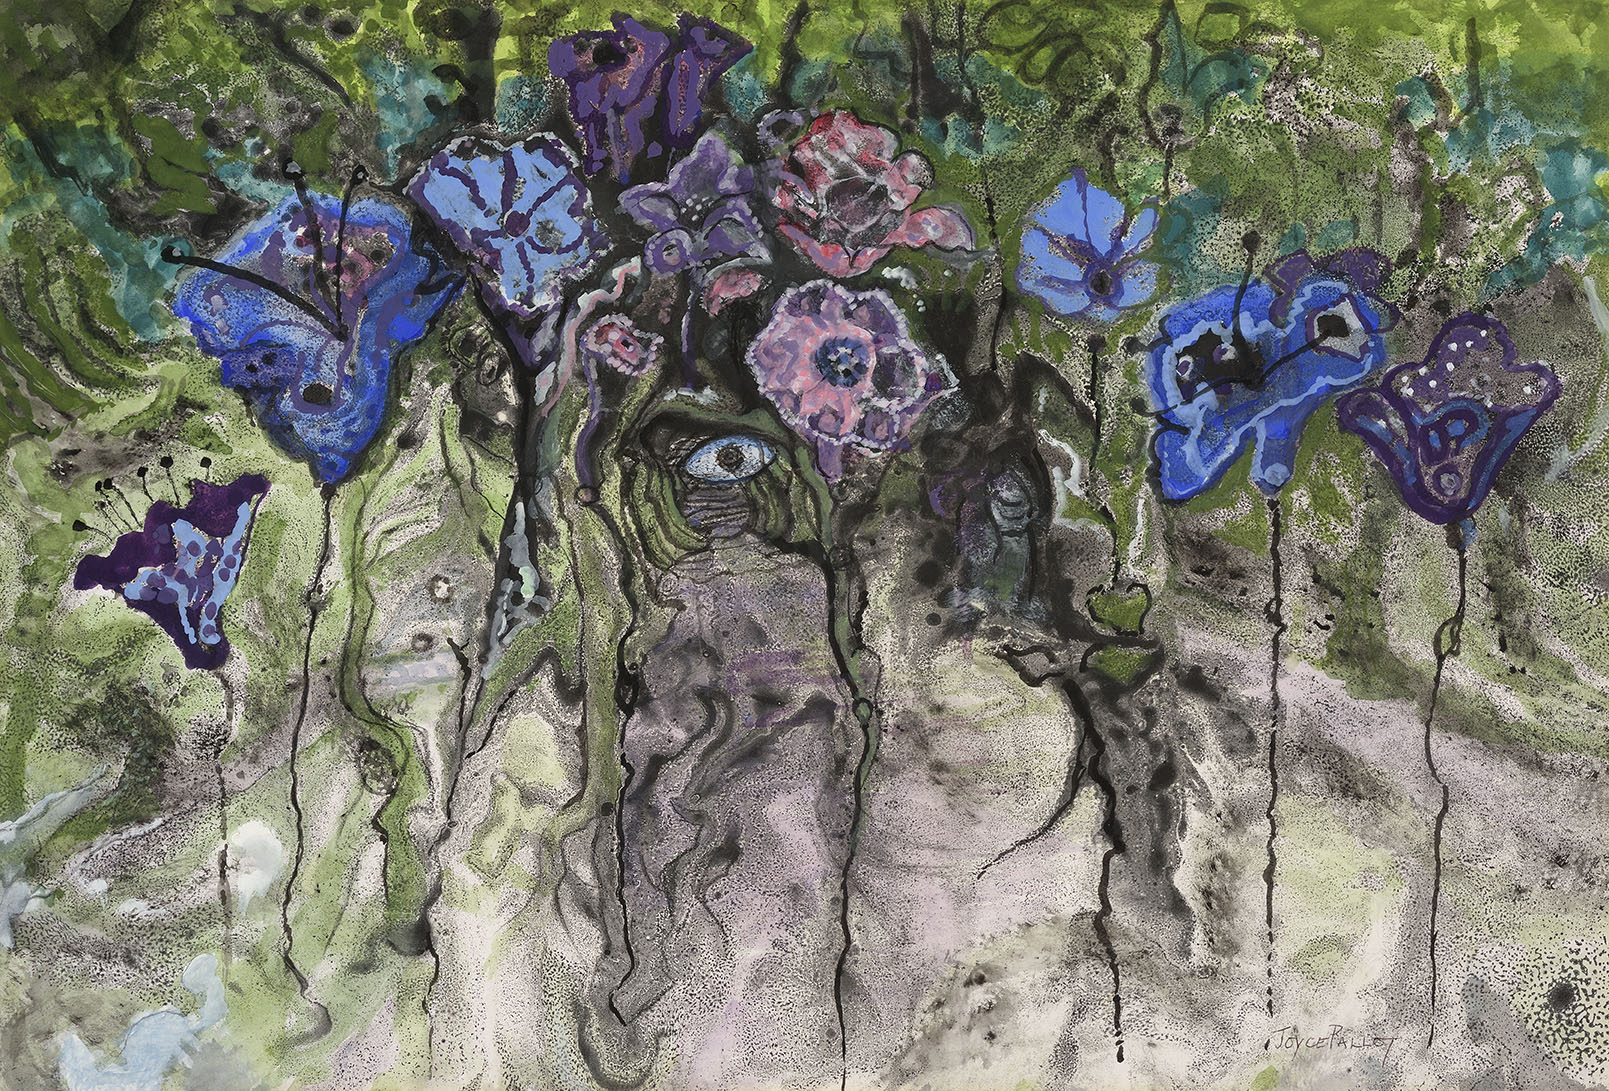 Joyce Pallot (1912-2004)  Floating Flowers, Mixed media on paper, 19 ¼ x 29 in, Signed  [CAS 50] Acquired in the early 1990s